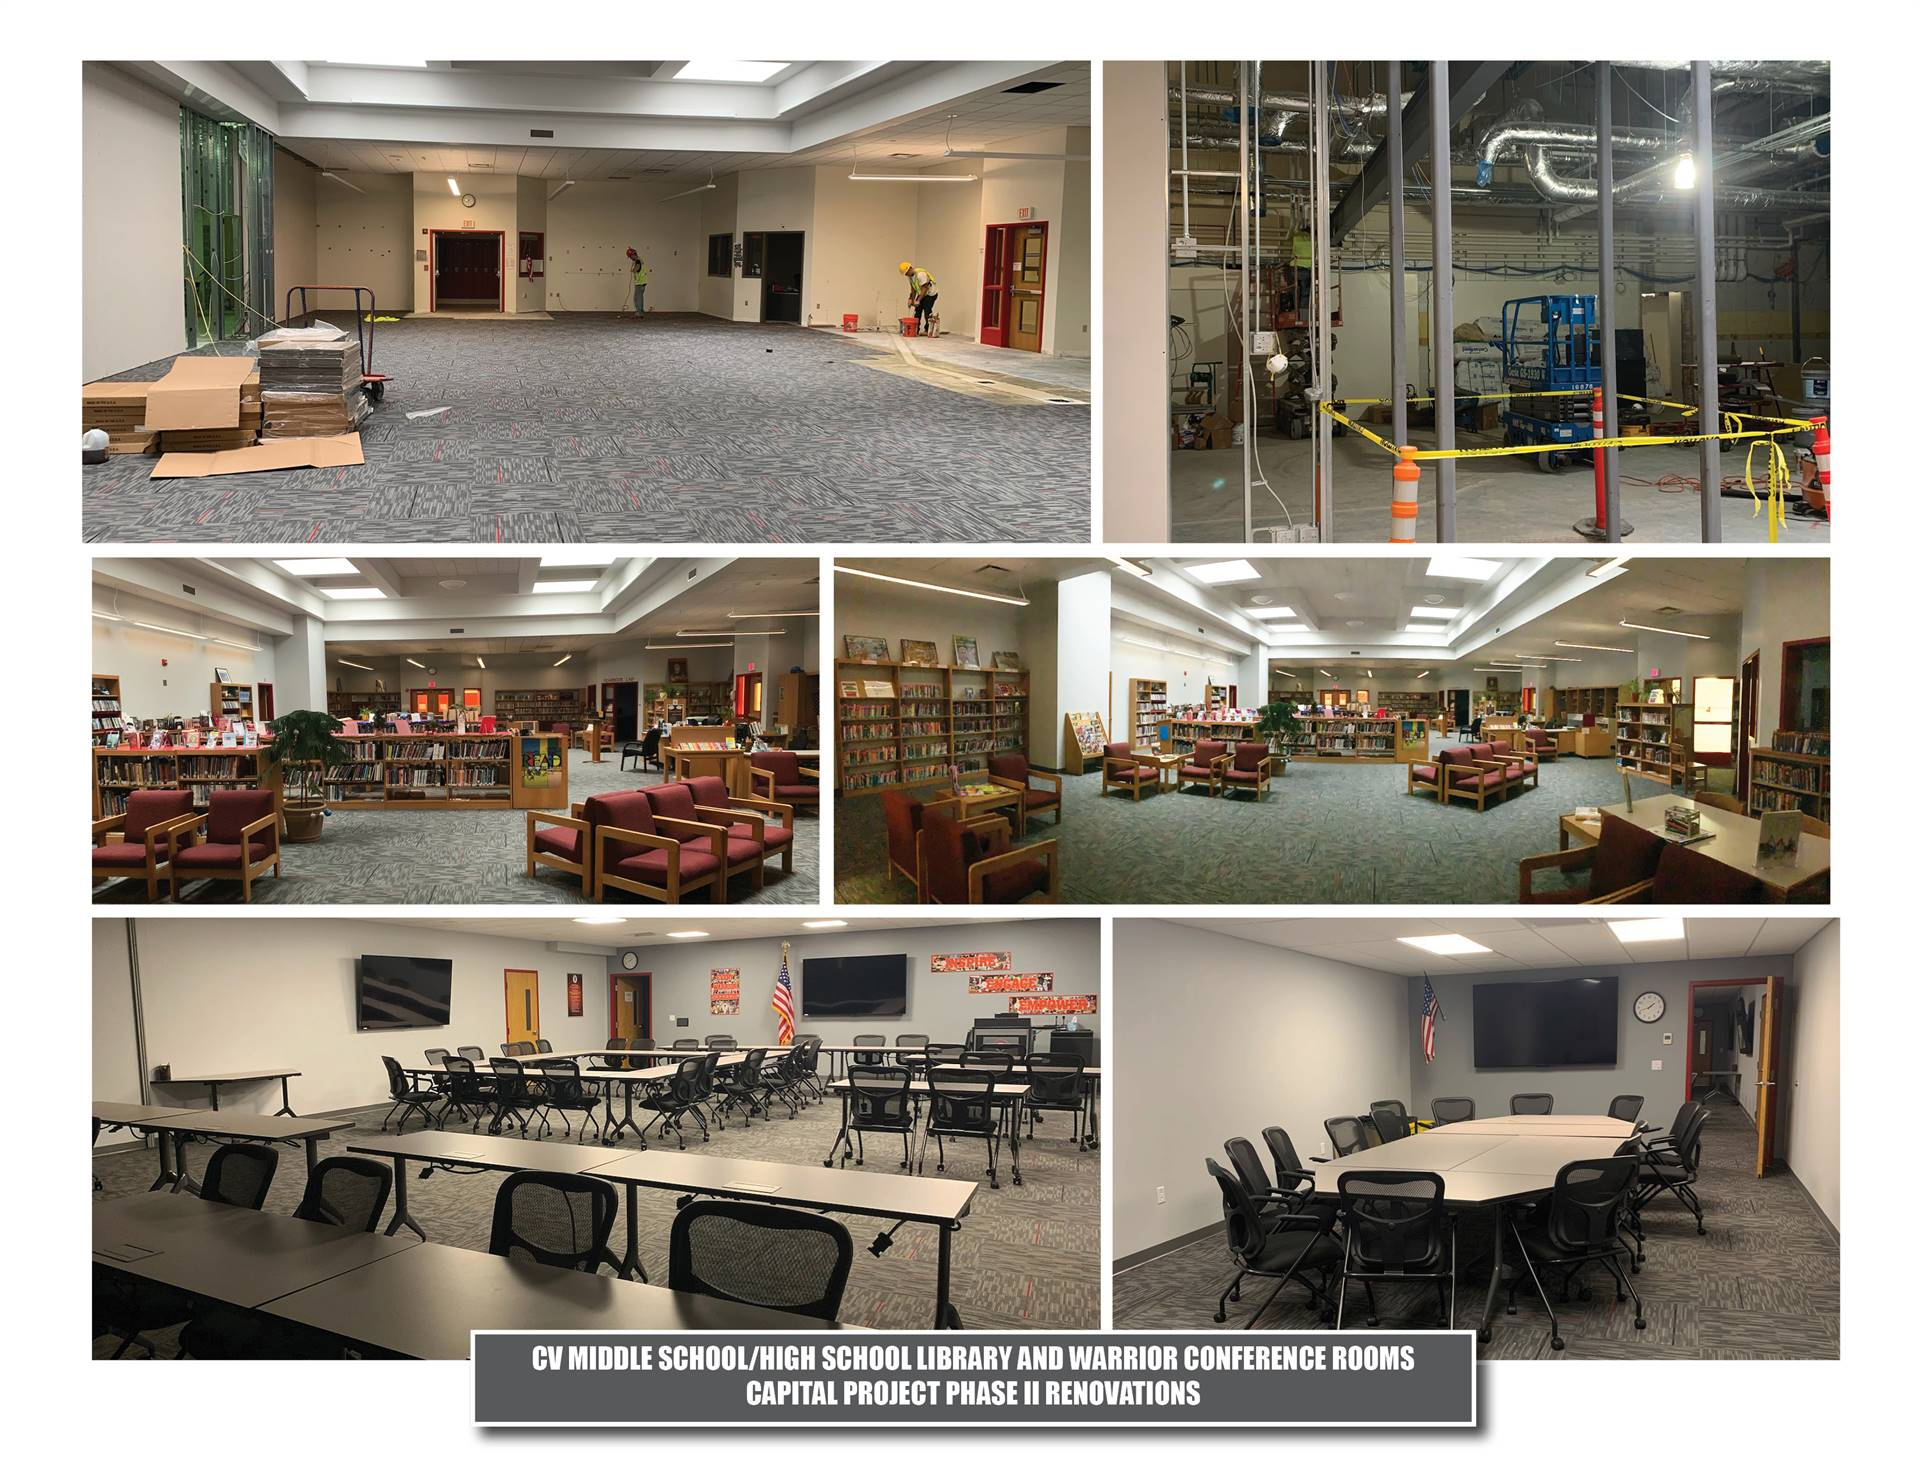 chenango valley middle school/high school library and warrior conference room renovations